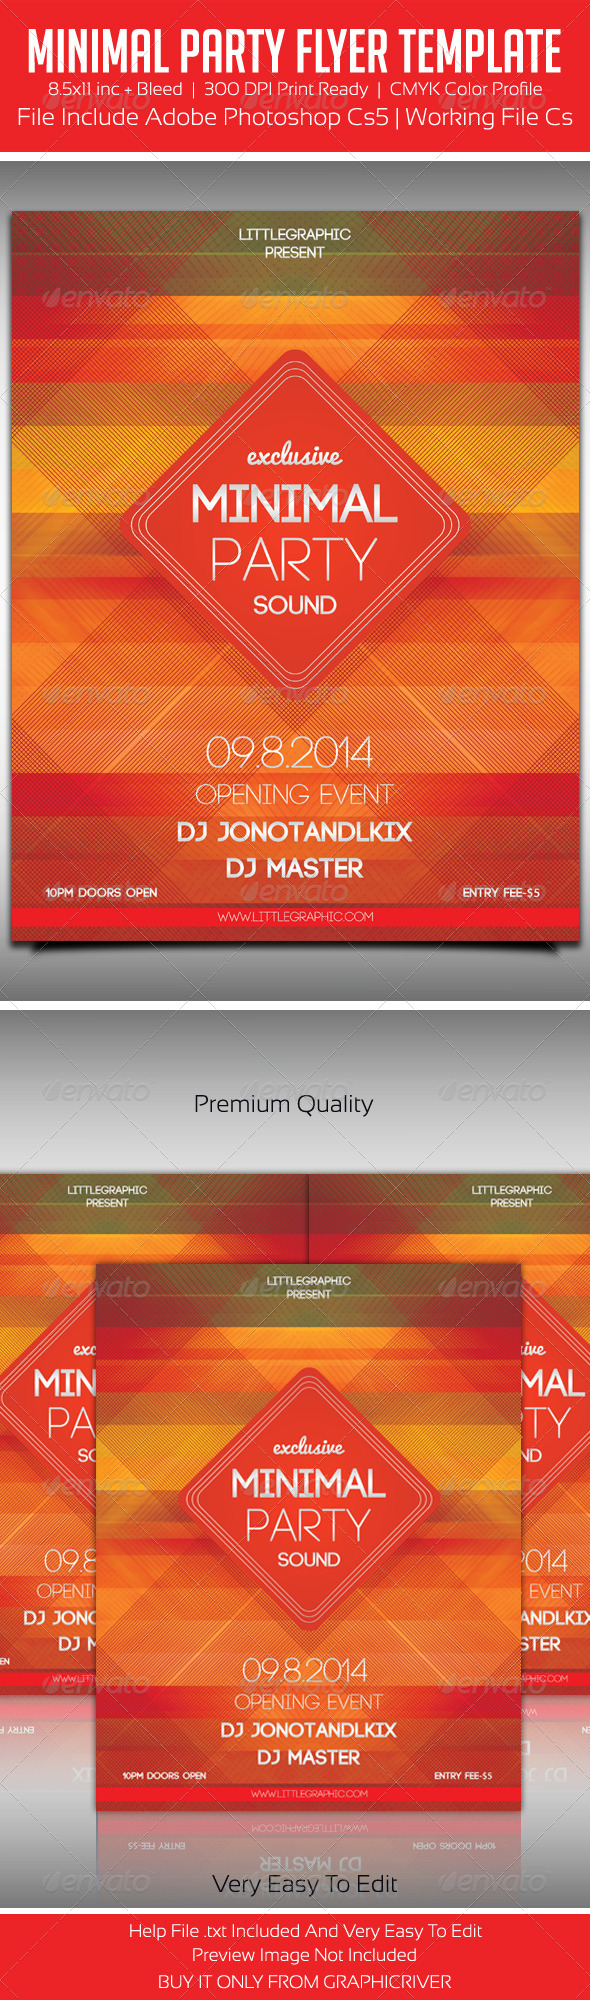 GraphicRiver Minimal Party Flyer 2 5551514